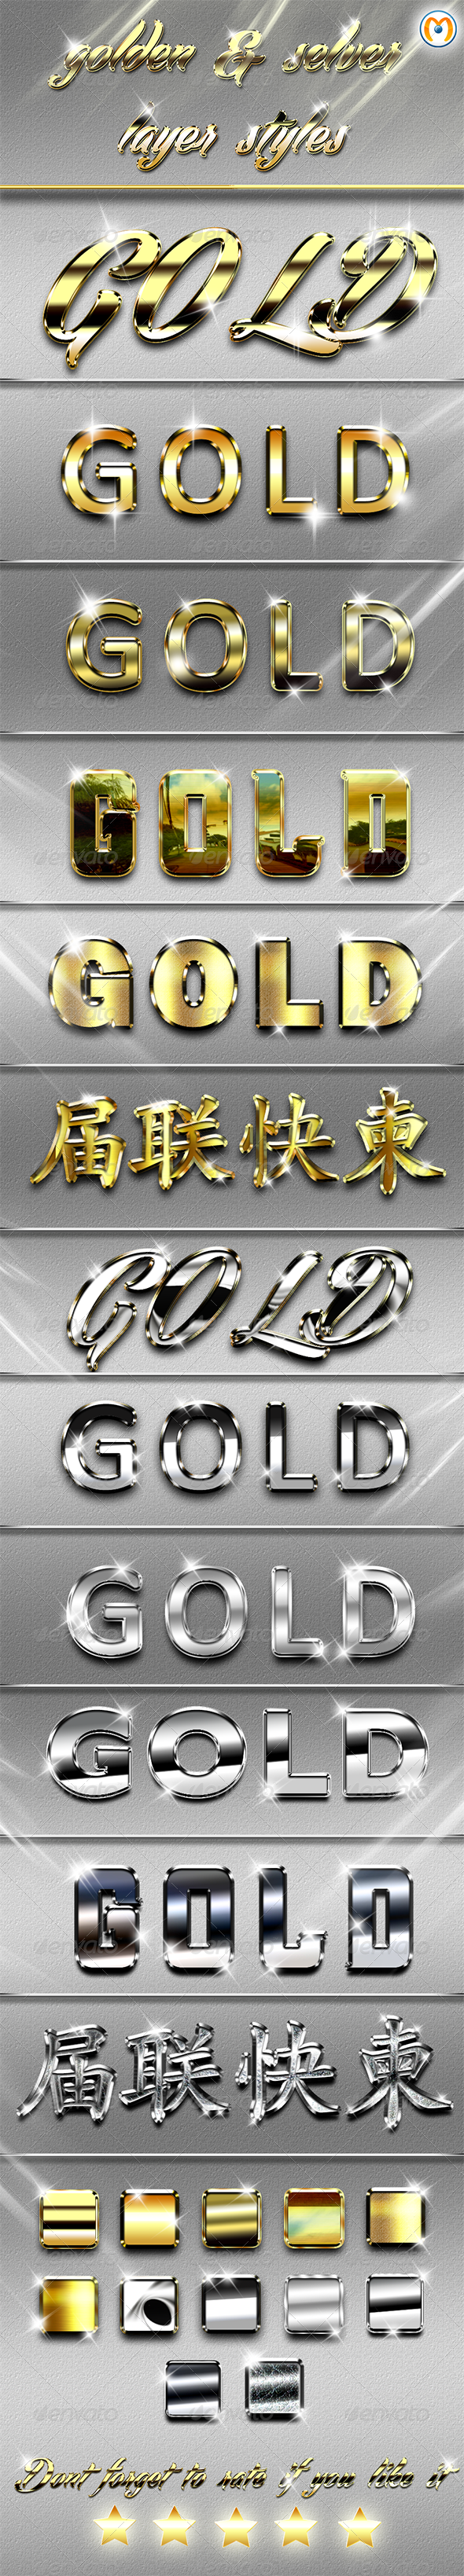 Golden & Silver Layer Styles - Text Effects Actions